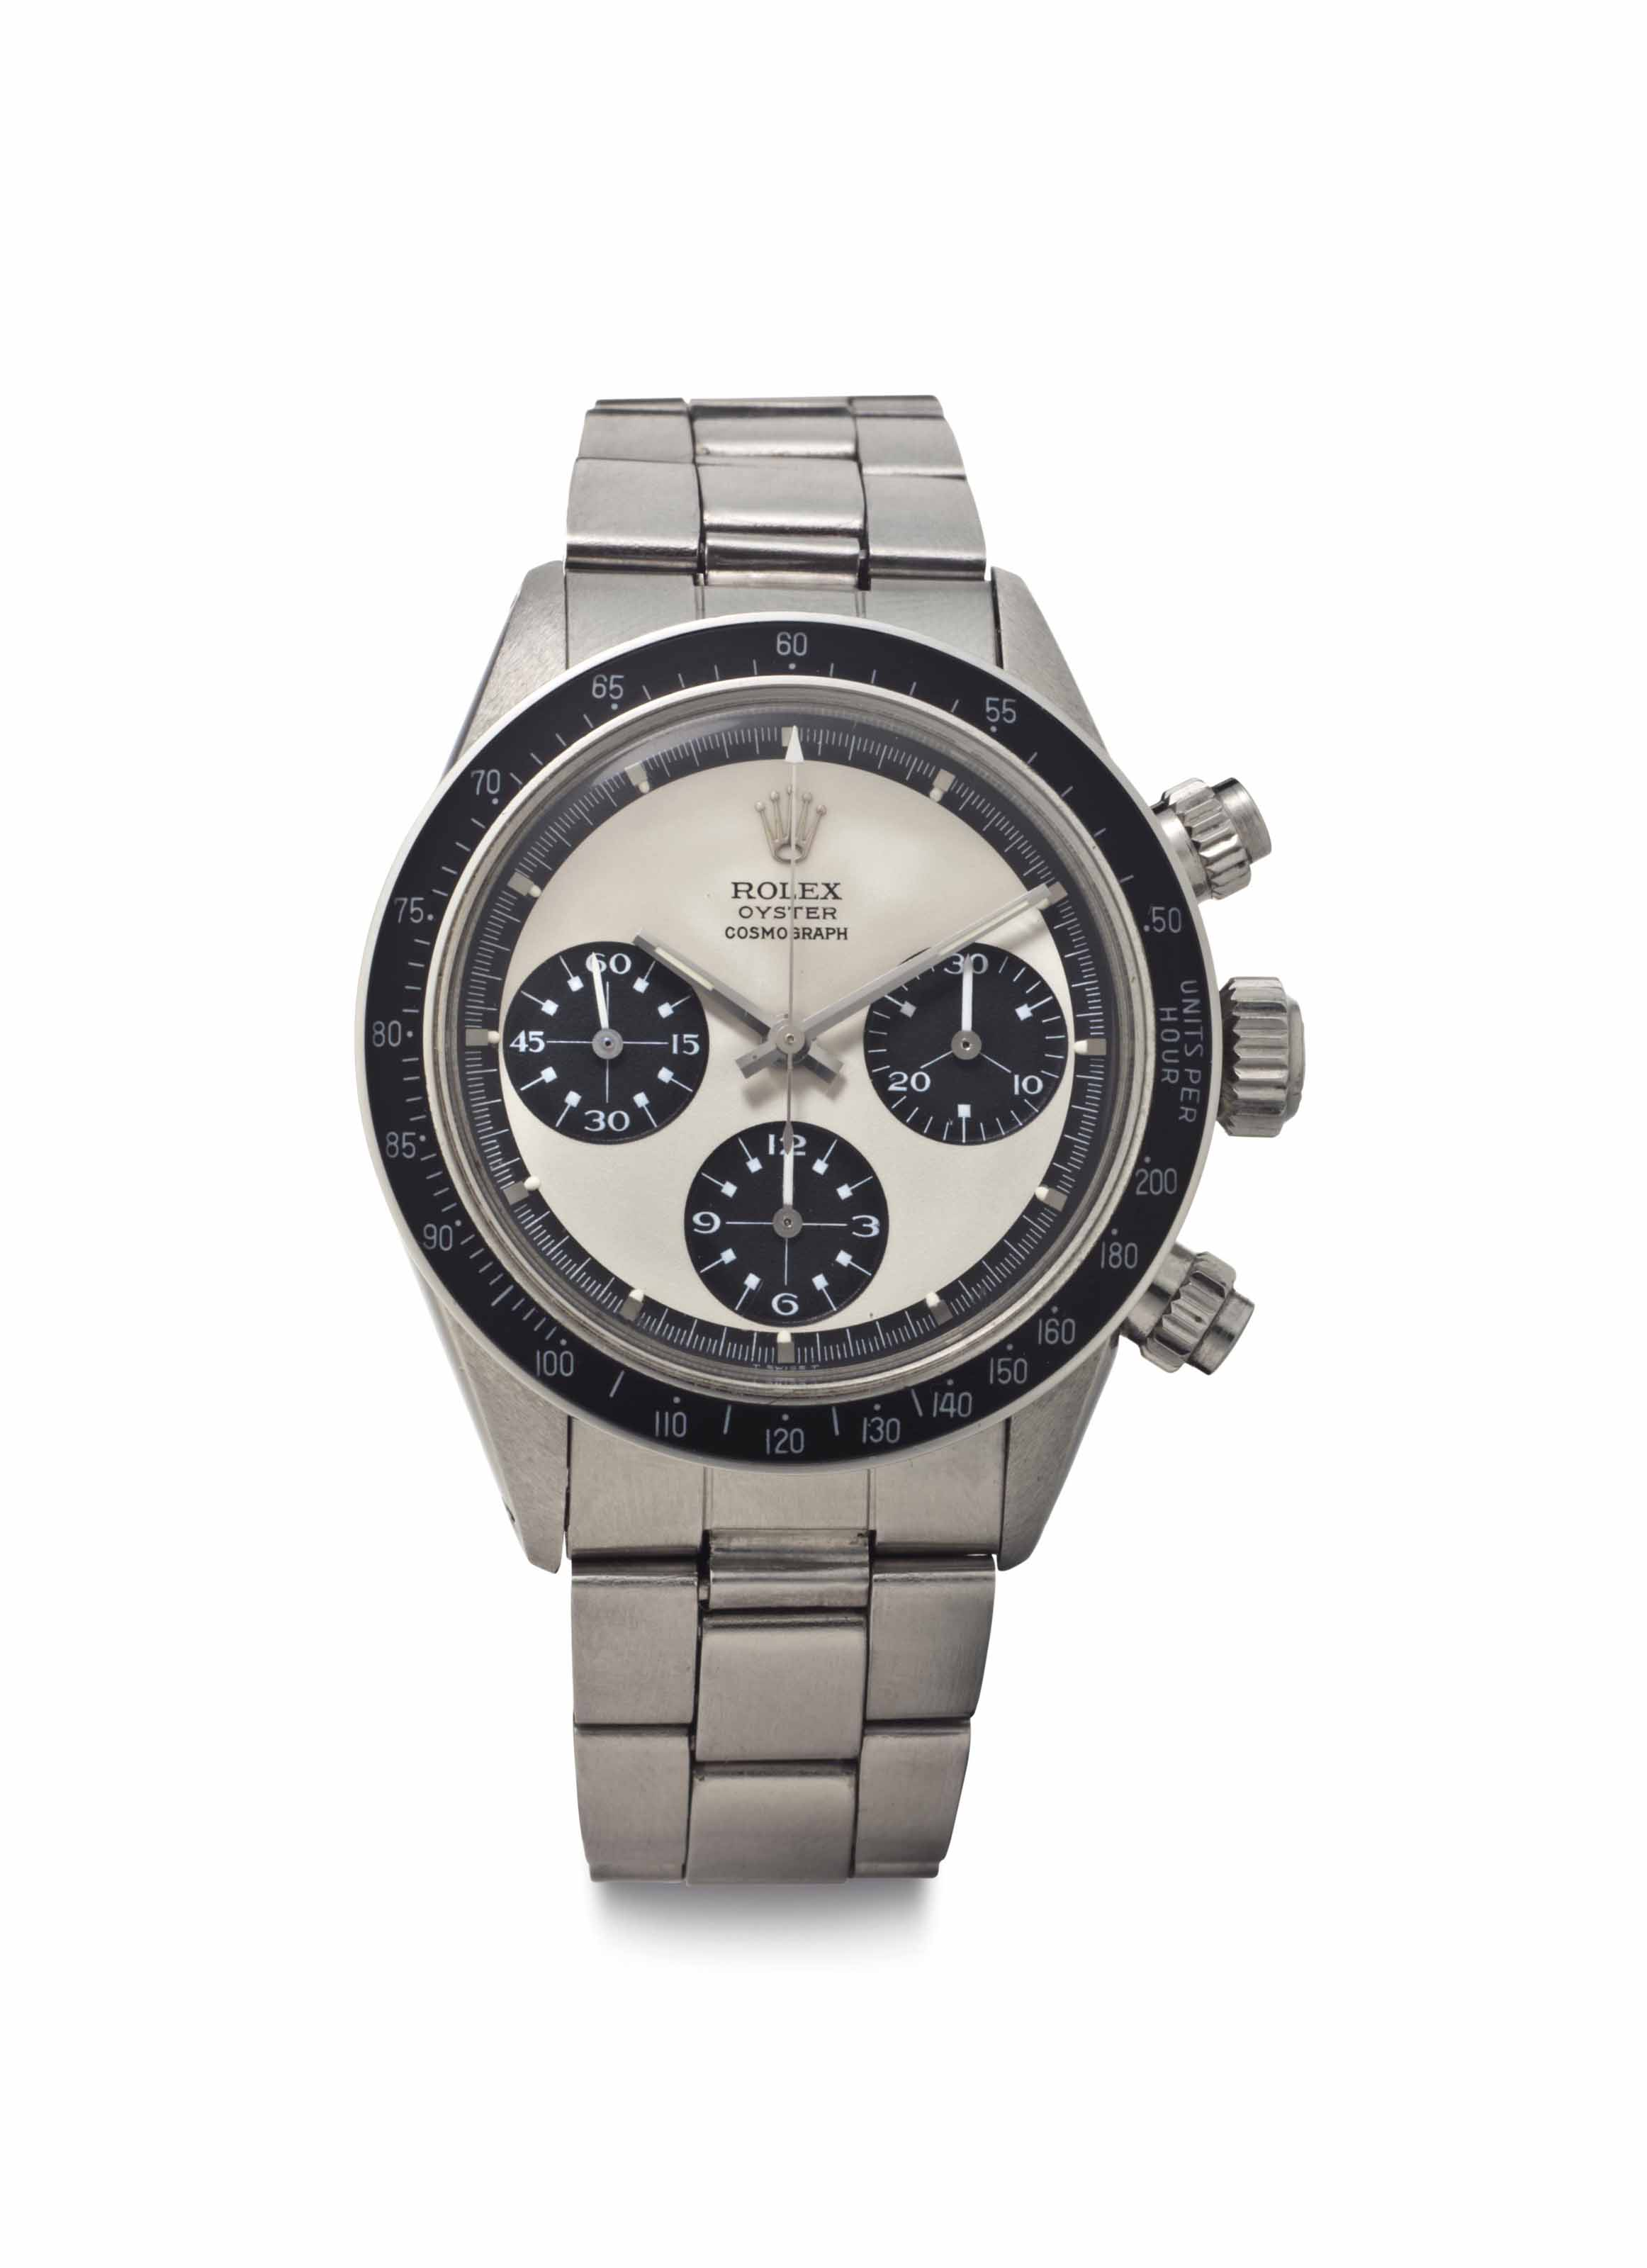 Rolex. A Very Rare and Extreme